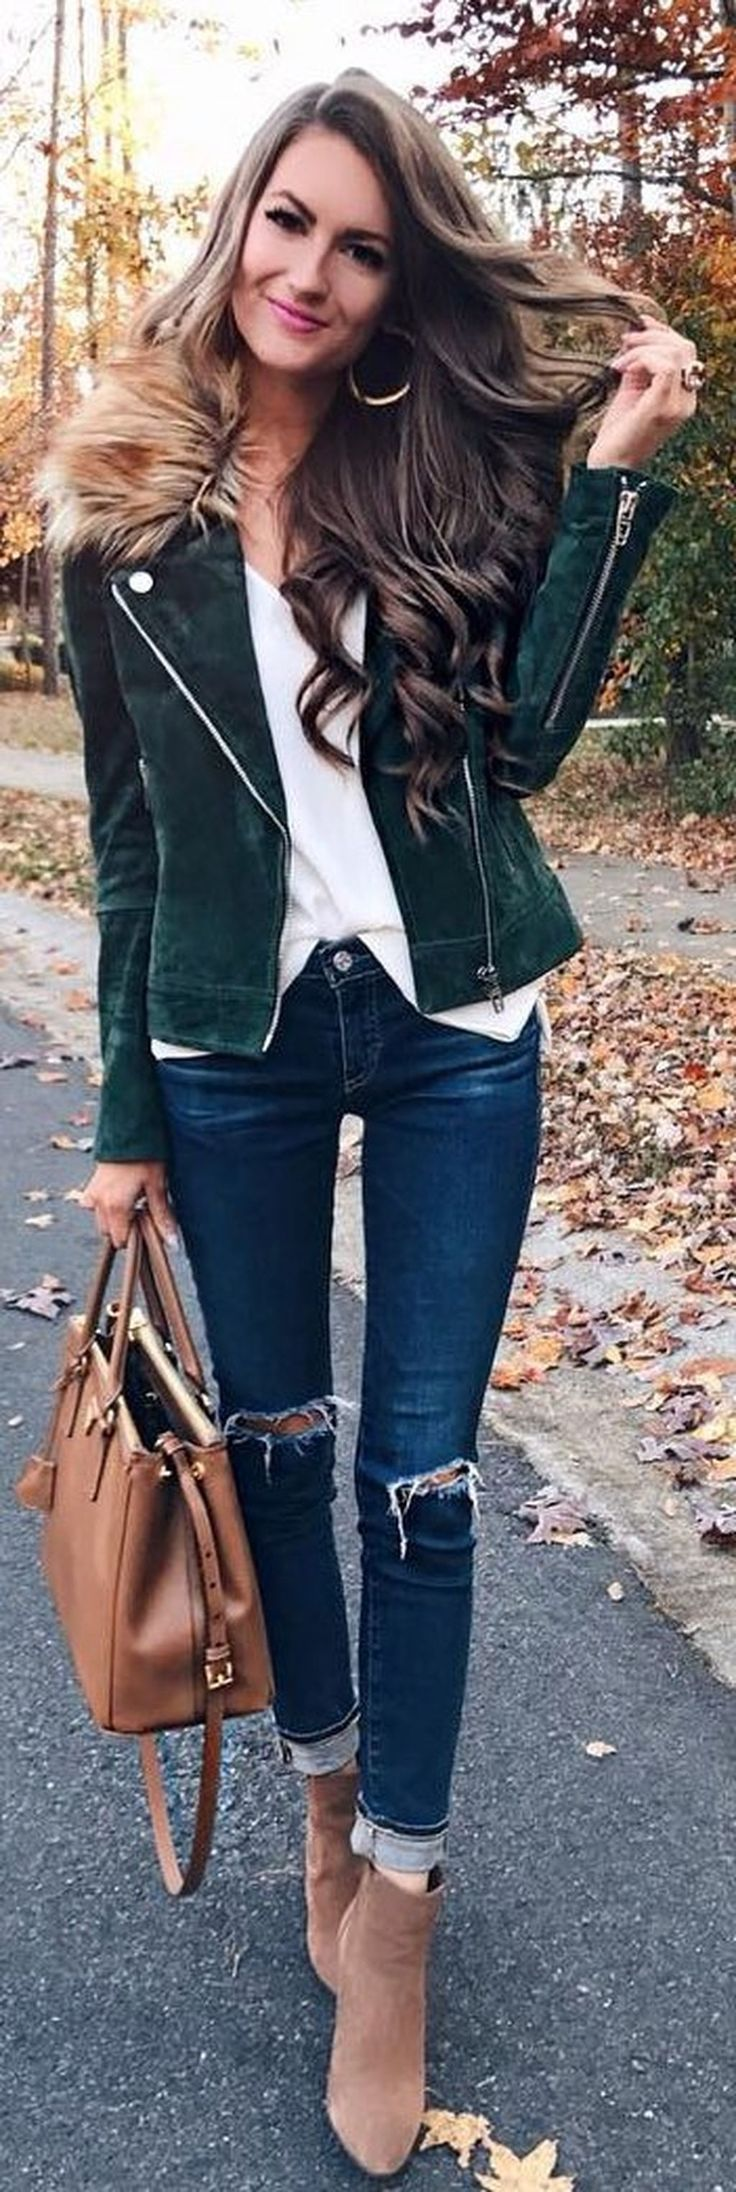 Cool 99 Classy and Casual Women Winter Leather Jacket Outfits Ideas. More at http://aksahinjewelry.com/2017/10/10/99-classy-casual-women-winter-leather-jacket-outfits-ideas/